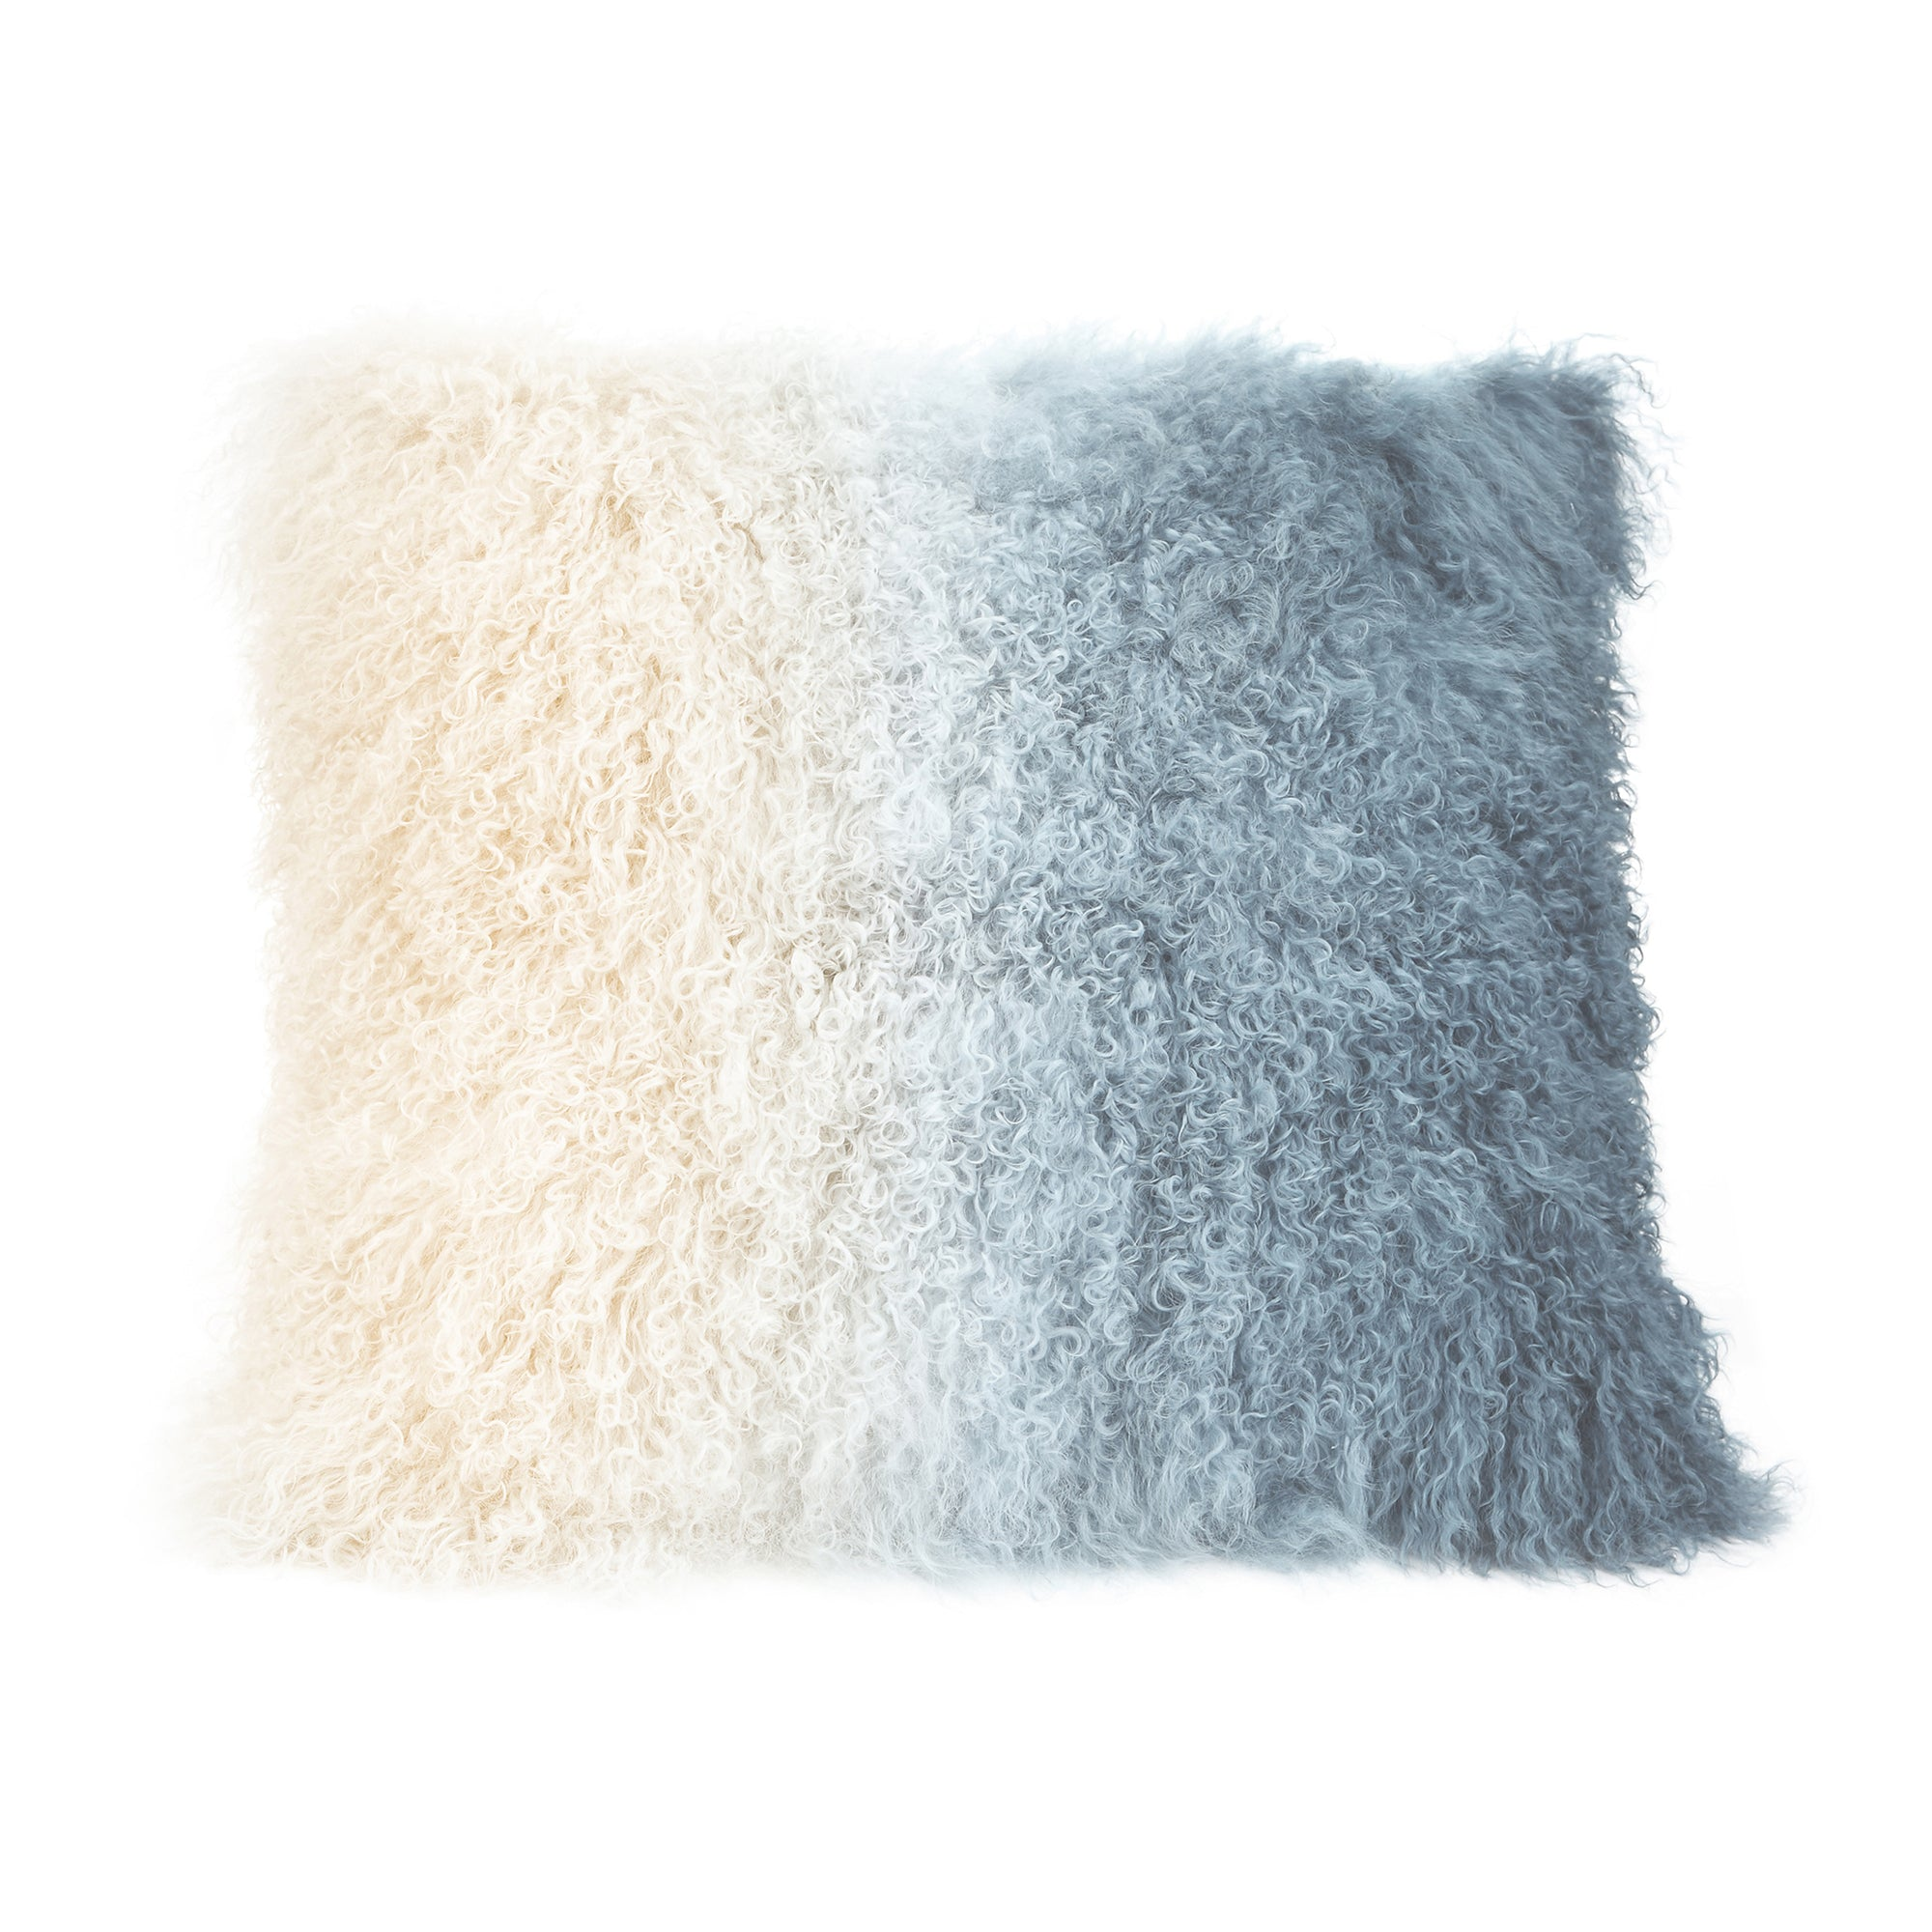 Lamb fur pillow light deep blue spectrum, blue - Tops-Dress